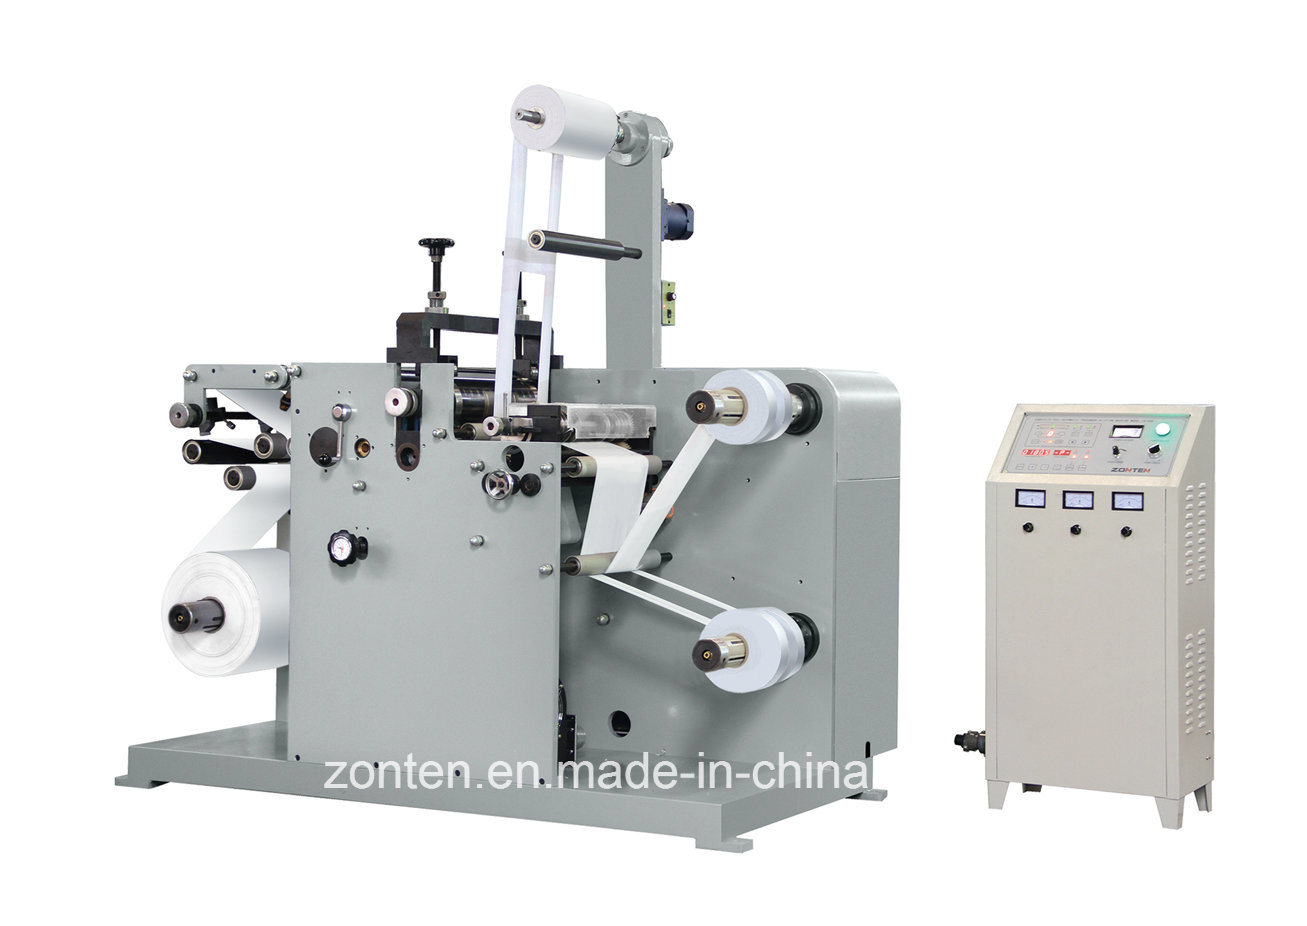 Rotary Die Cutter&Slitting Machine (FQ-330R)